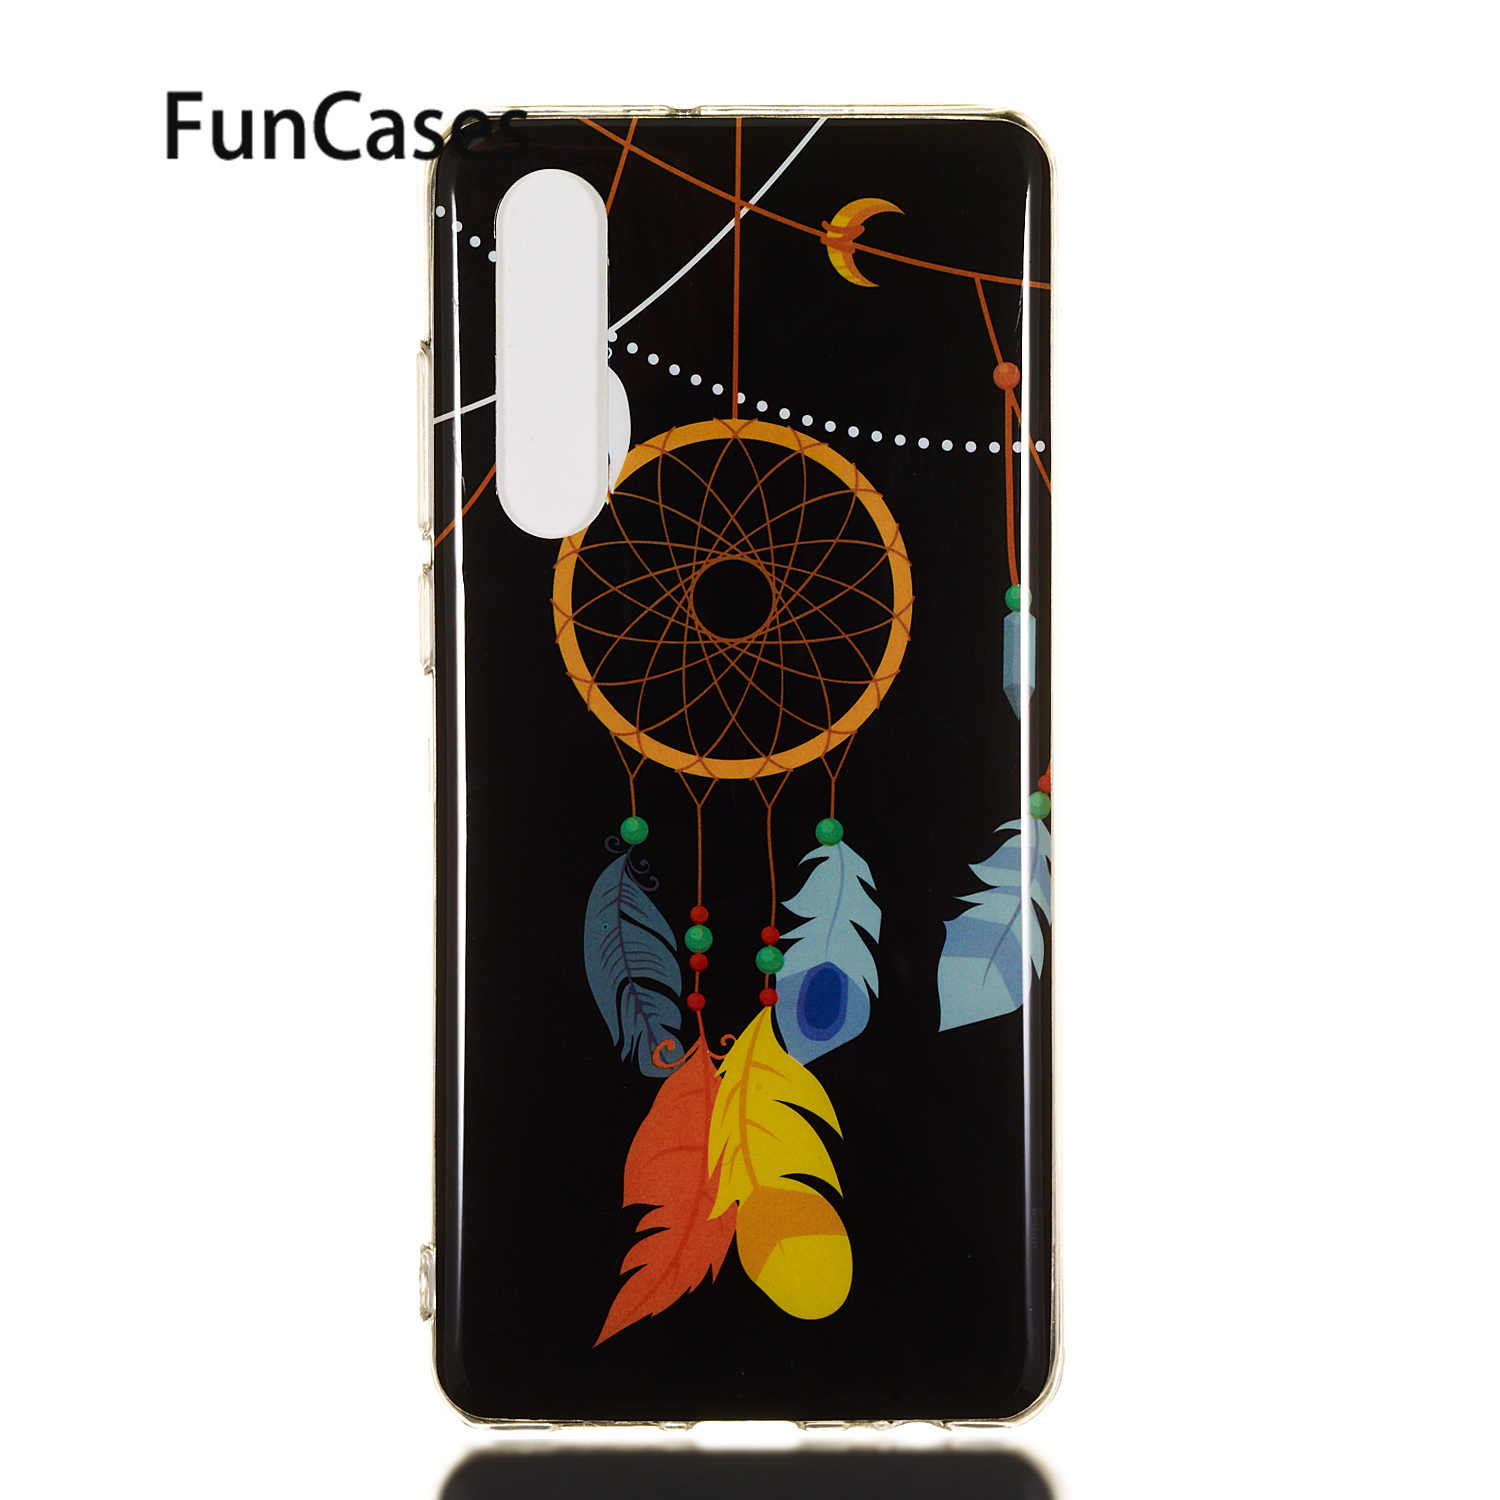 Luminous Phone Case For coque Huawei P30 Pro Glossy Soft TPU Shell sFor Csse Huawei estojo P30 Plus P20 Lite Pro Movil